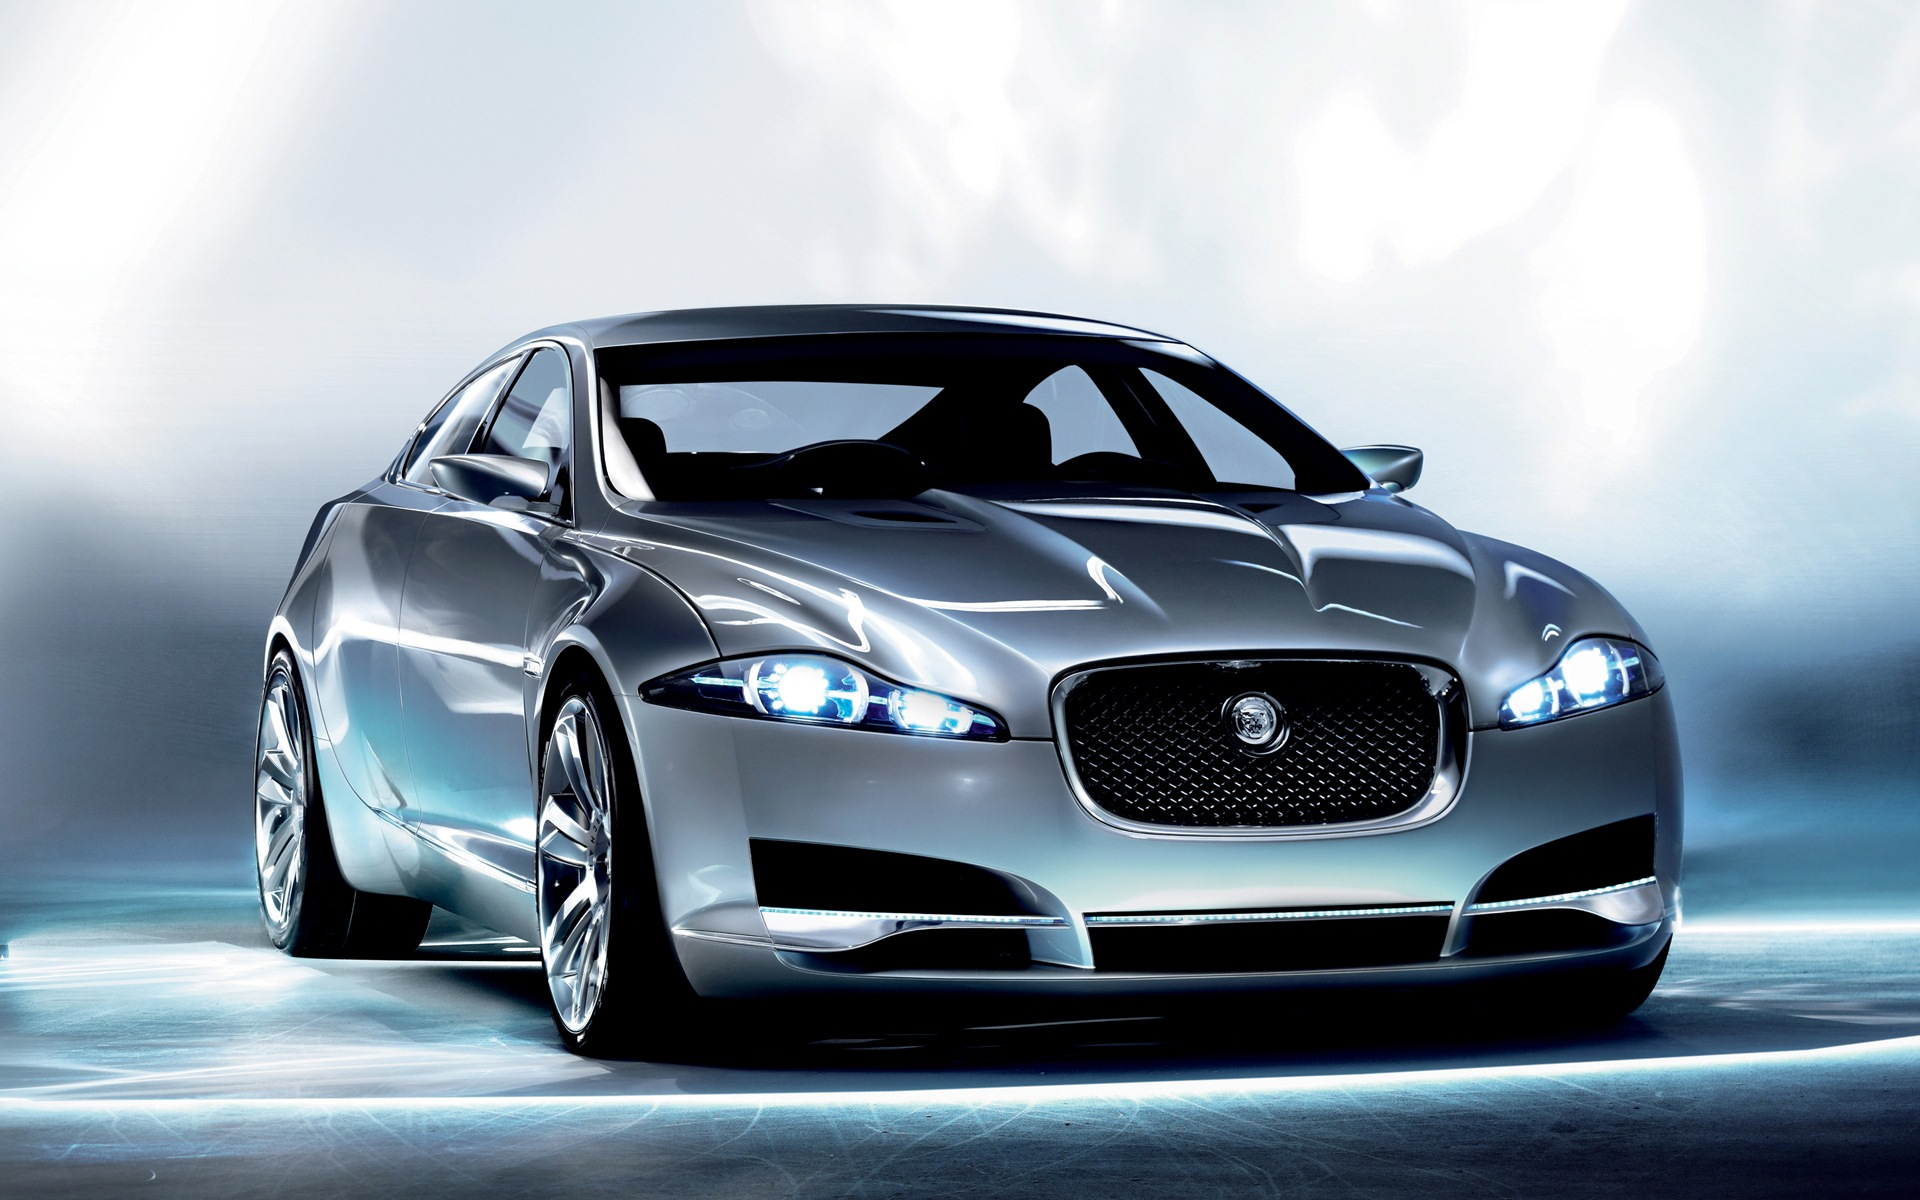 click to free download the wallpaper--Pics of Cars - Jaguar C XF Concept in Pixel of 1920x1200, Turned on Lights, Smooth Car Lines, Looking Indeed Good 1920X1200 free wallpaper download